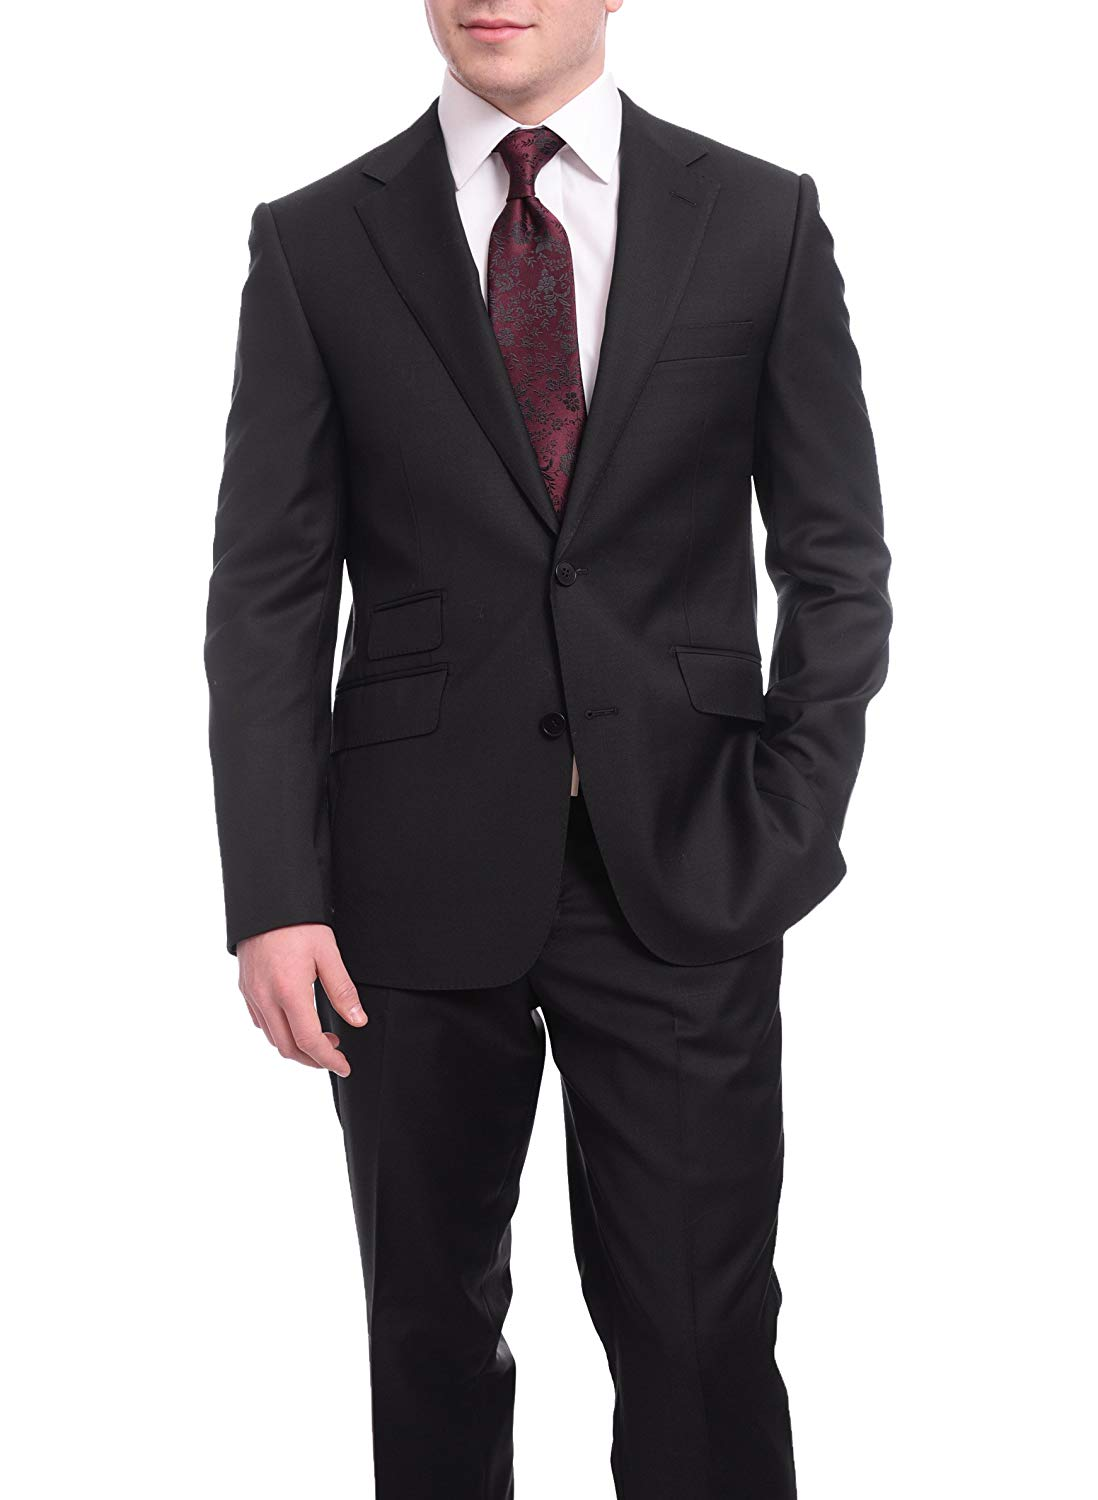 324f89b6885664 Get Quotations · Napoli Slim Fit Solid Black Half Canvassed Wool Cashmere  Suit Ticket Pocket